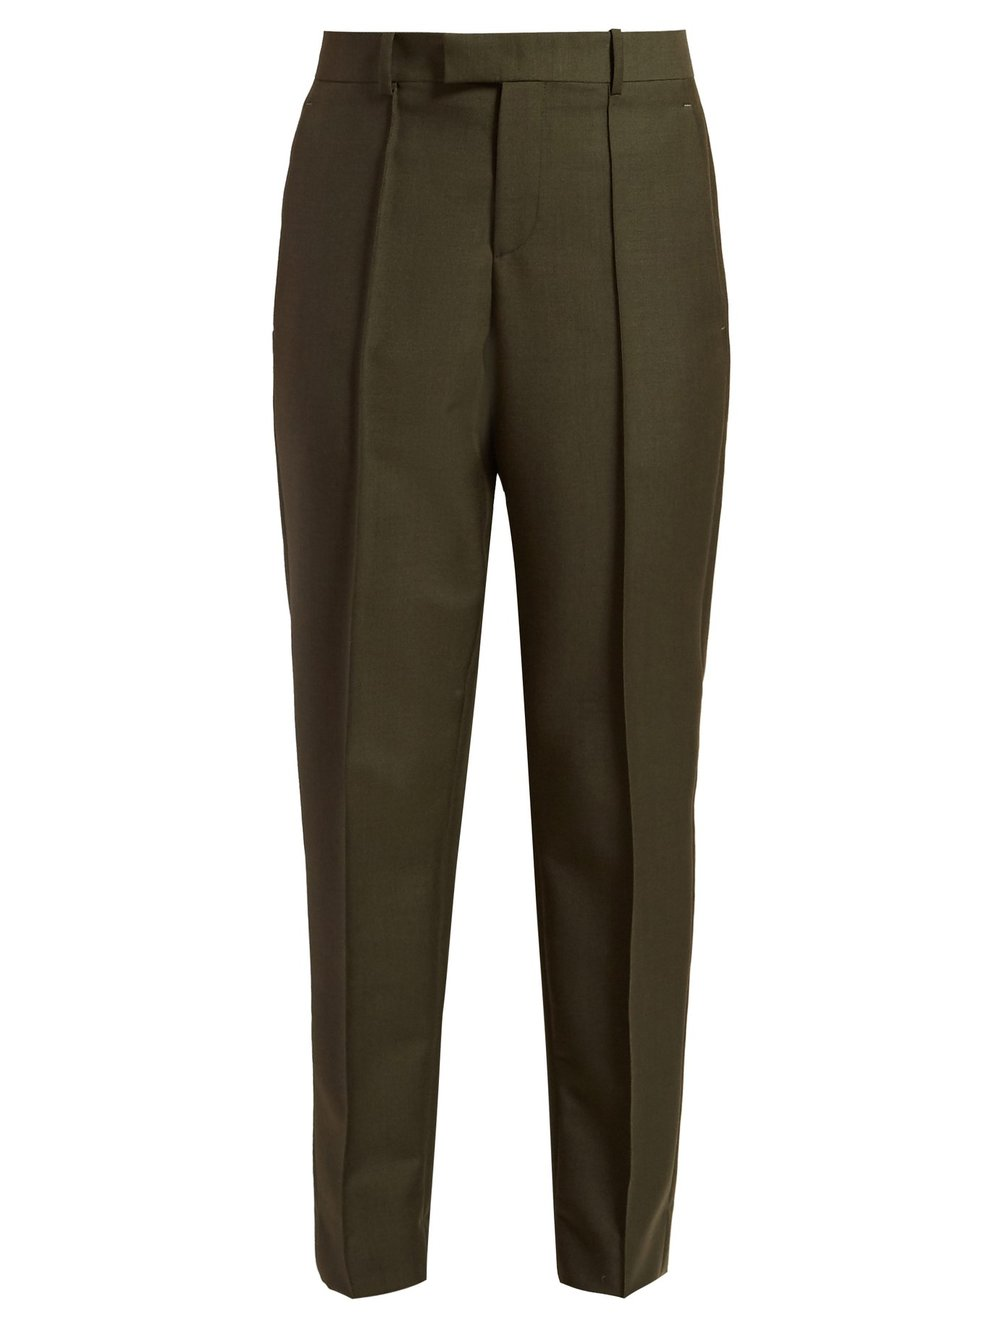 Tapered crepe trousers